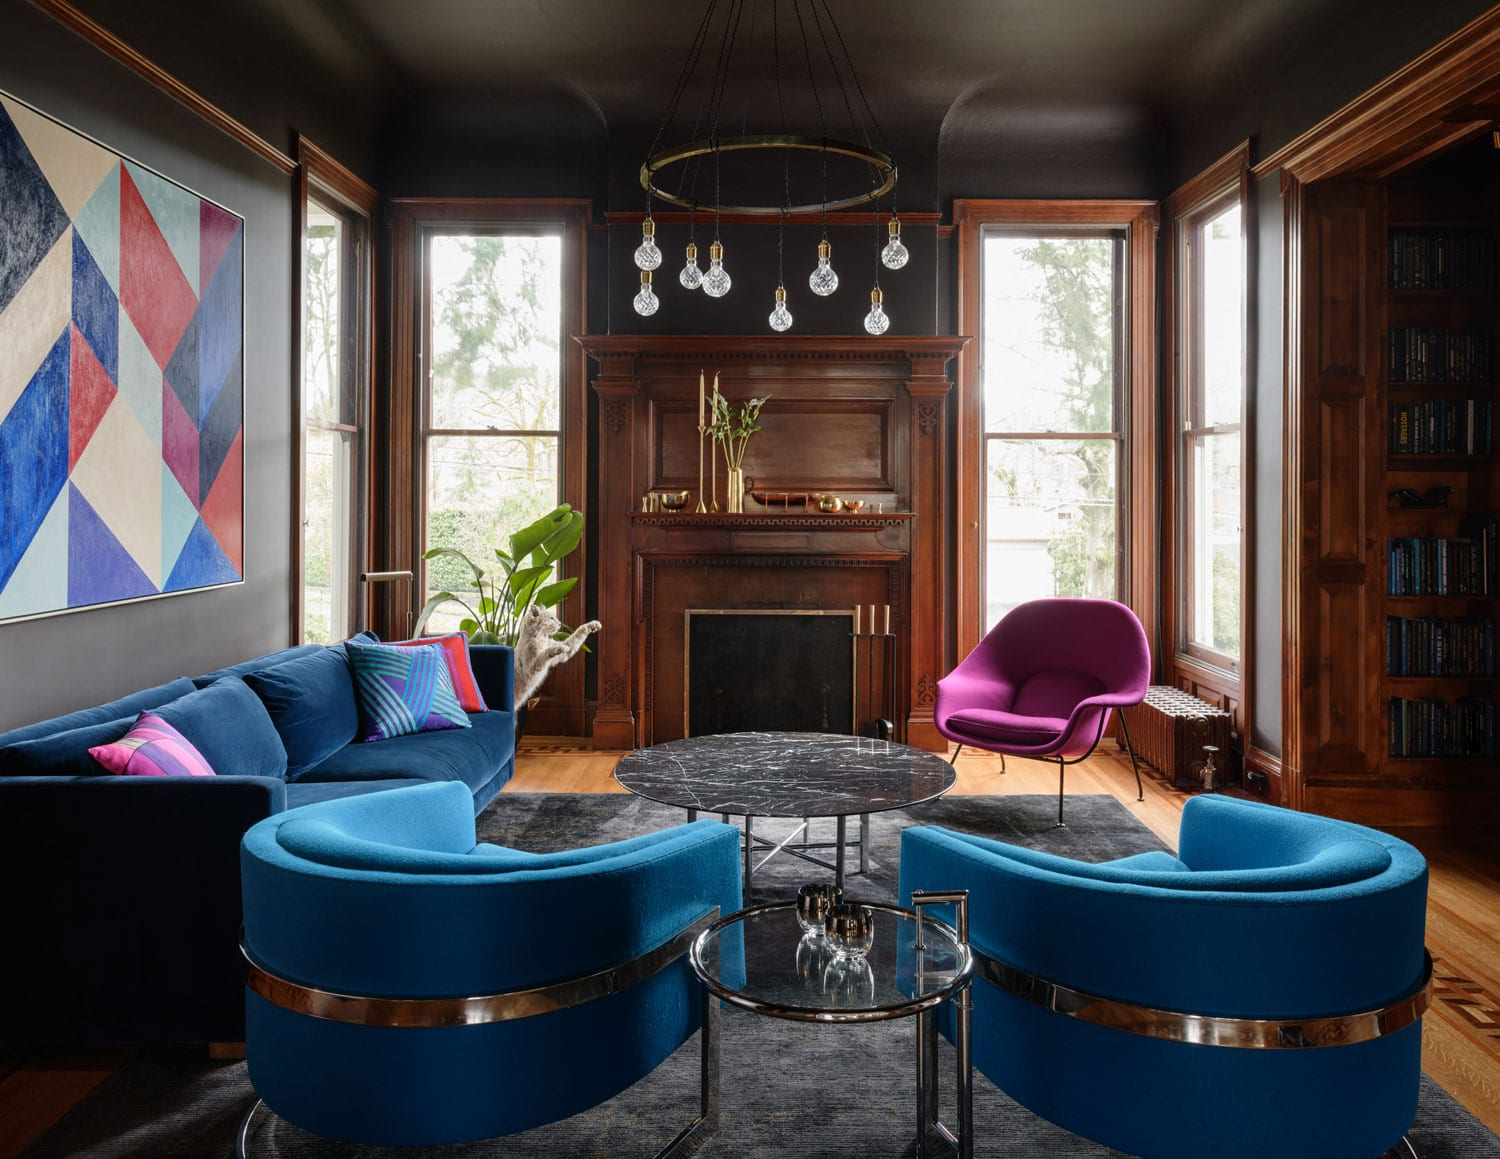 The 80s Are Back: Here's How to Style Your House With 1980s Home Décor Trends